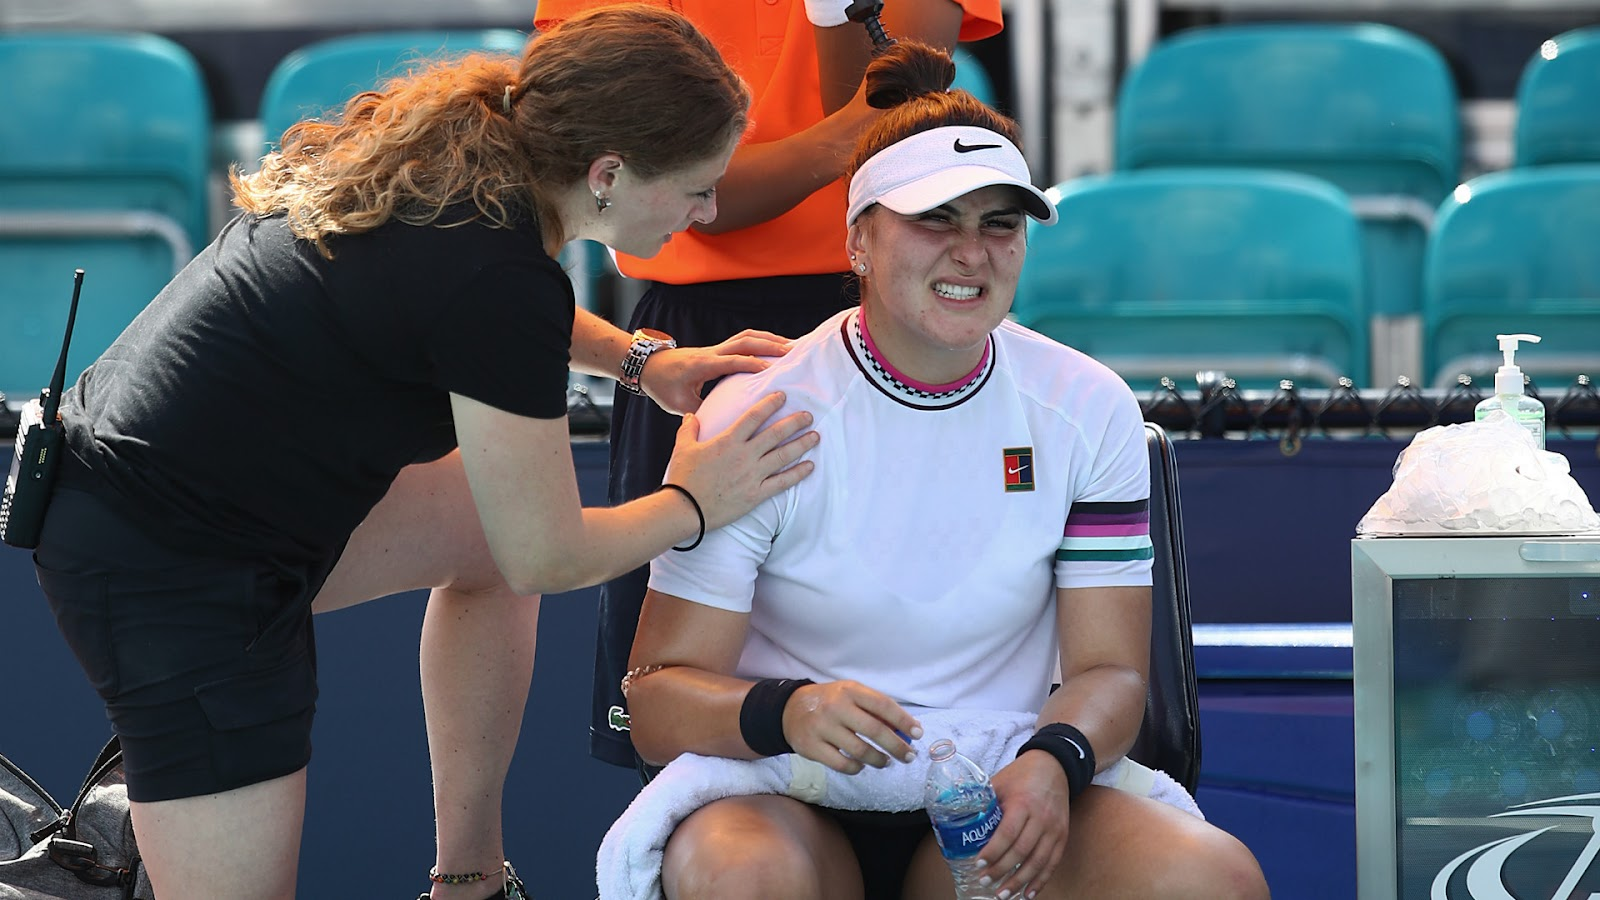 Bianca Andreescu calls a doctor because of ankle pain